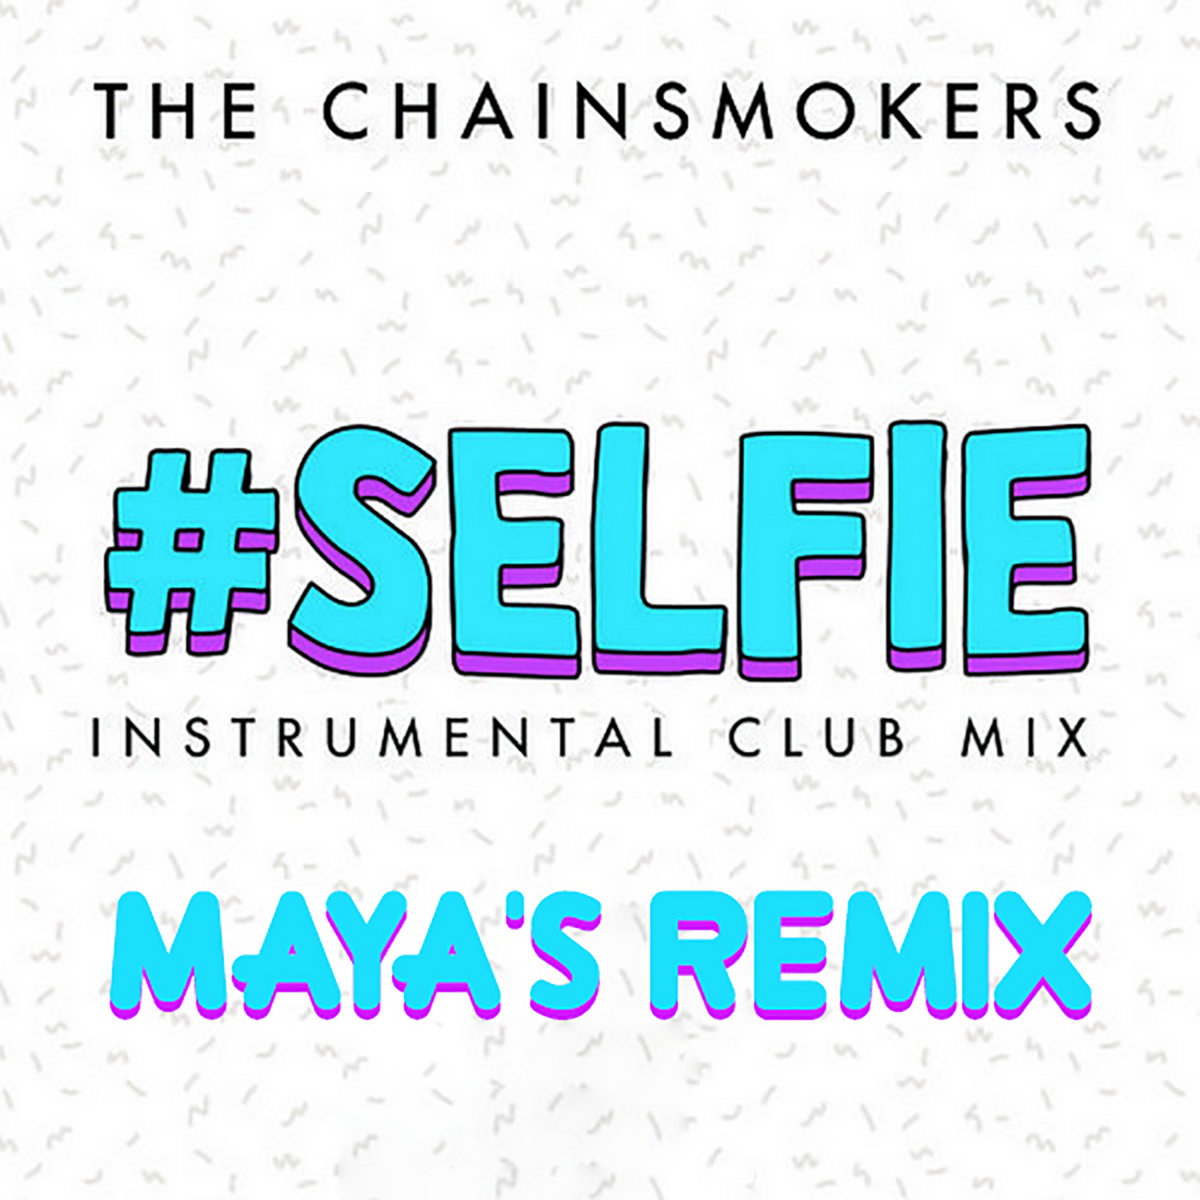 the chainsmokers - #selfie instrumental club mix